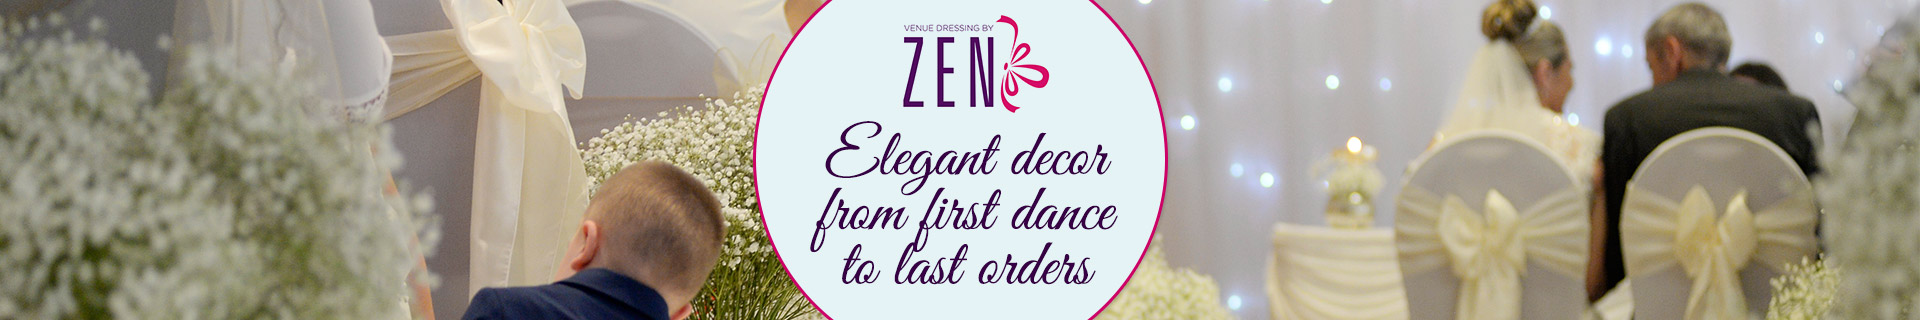 Elegant decor, from first dance to last orders!